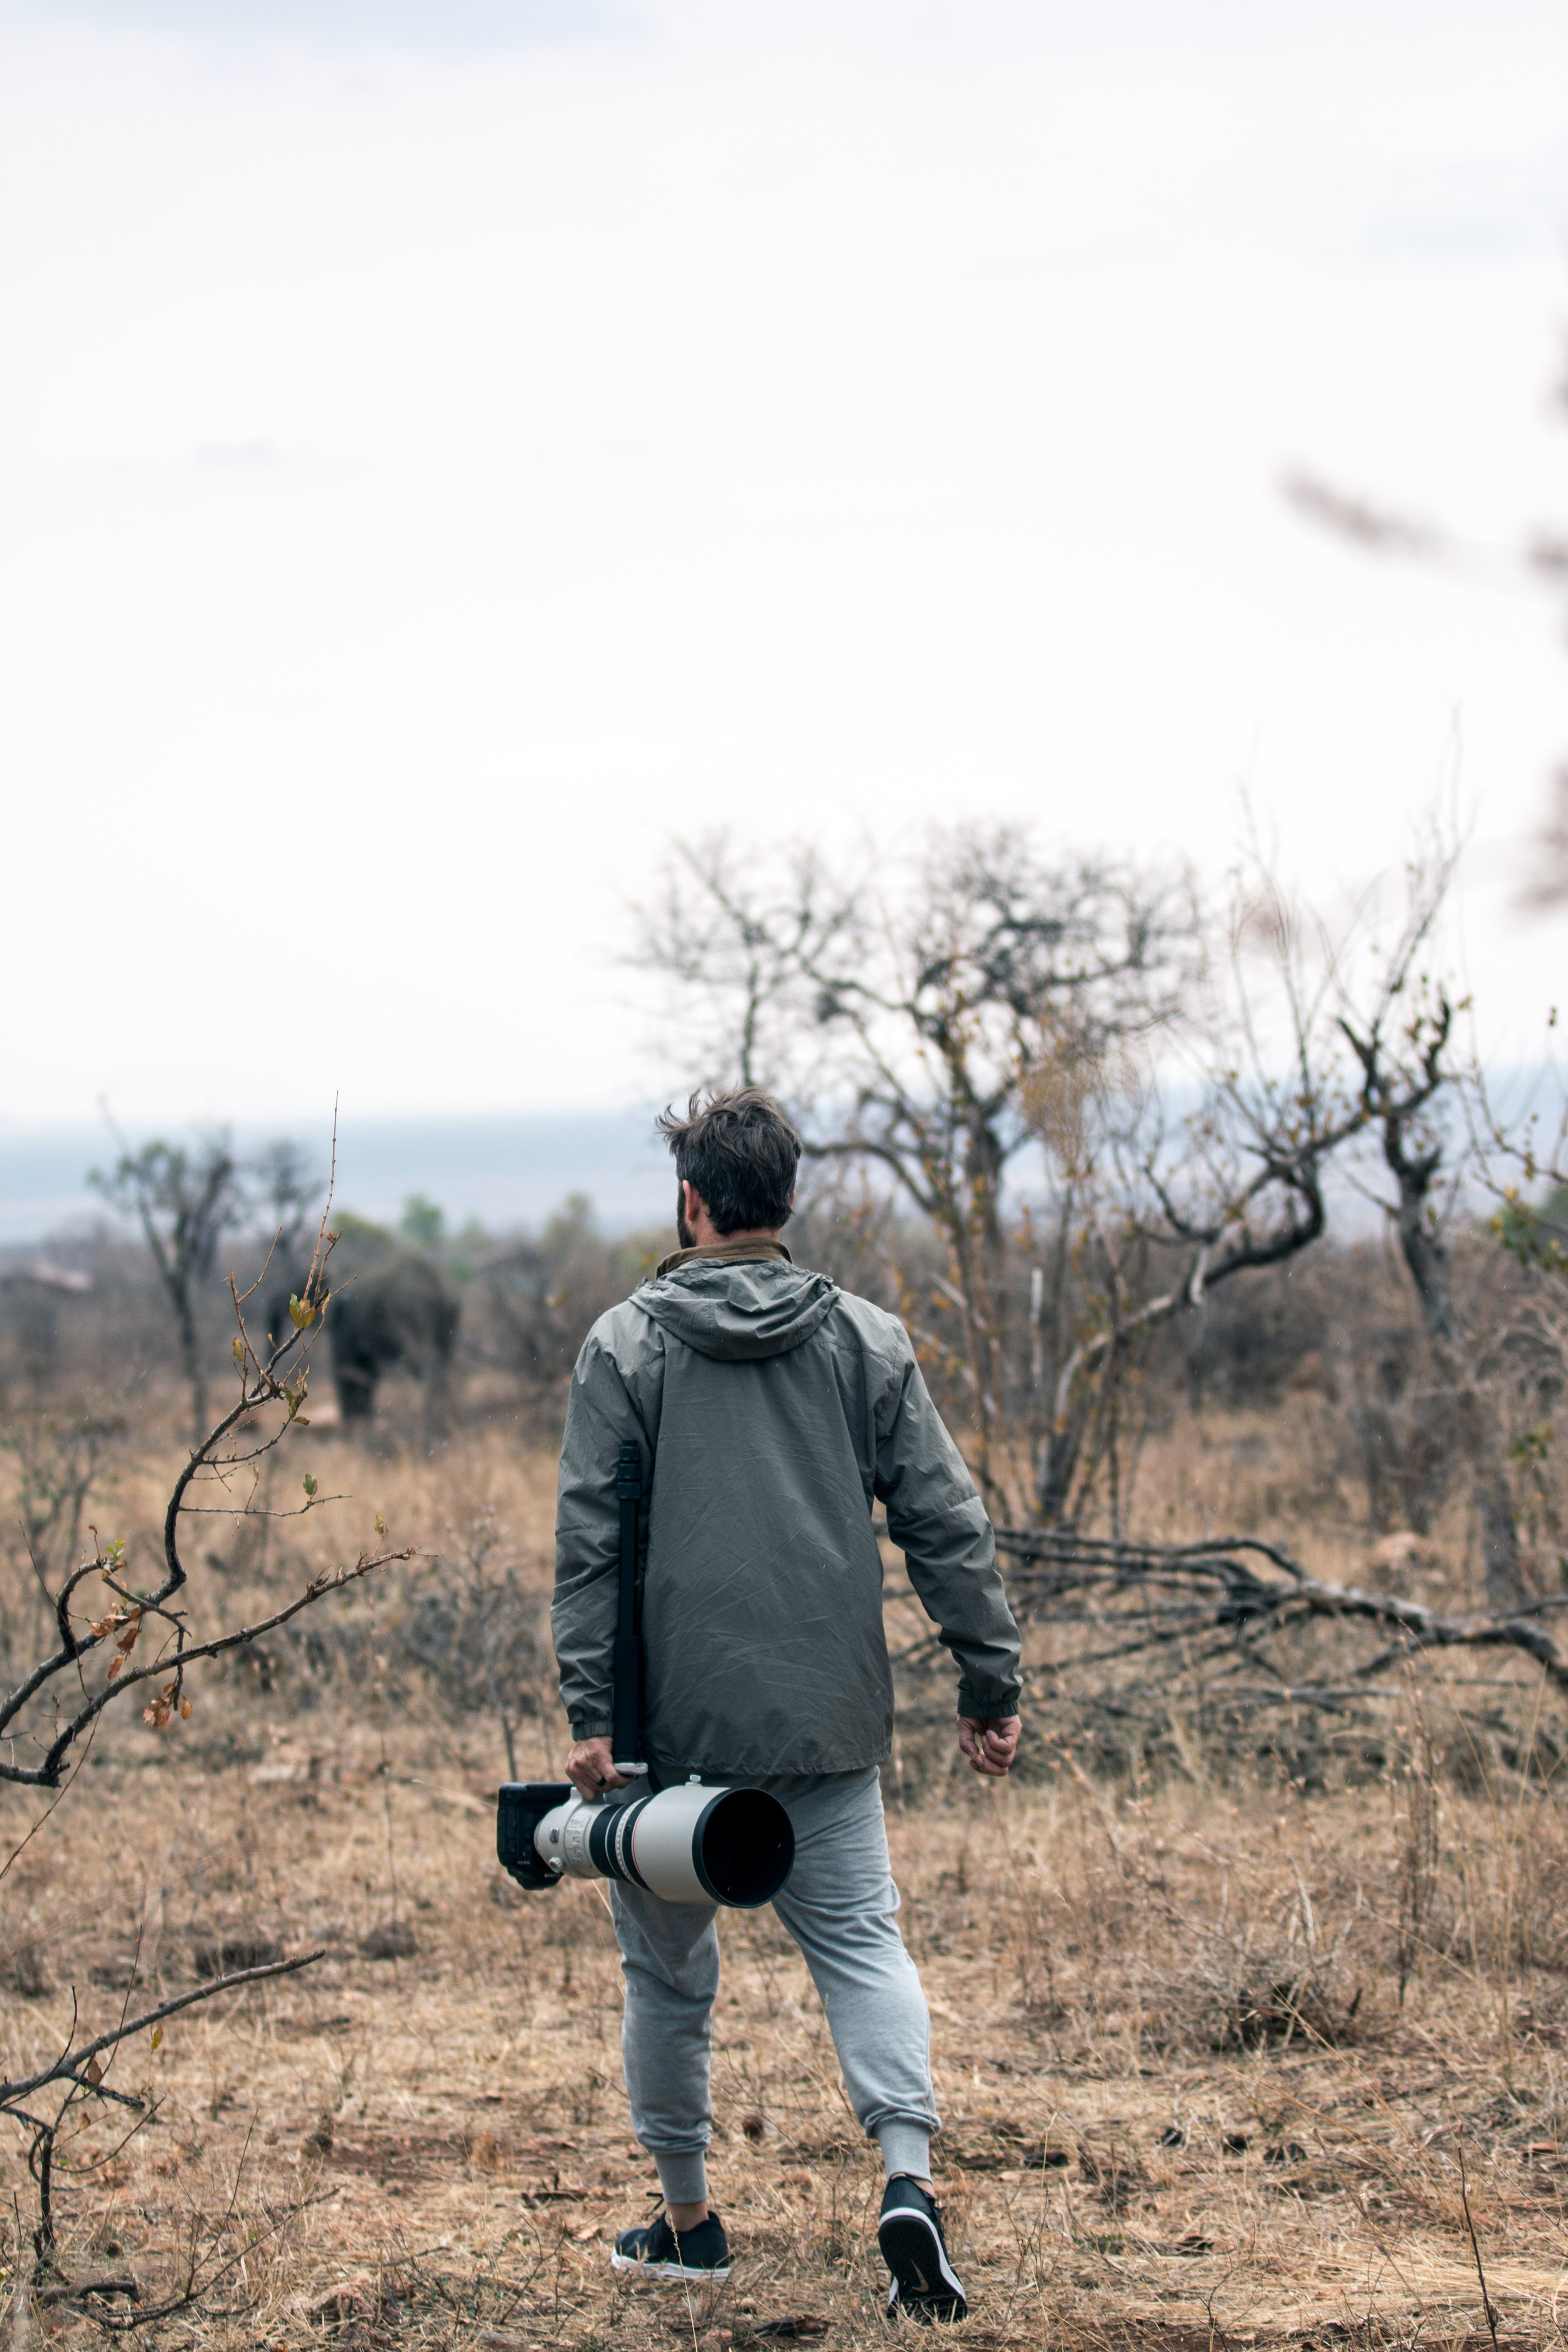 Walking around in South Africa looking for animals to photograph.